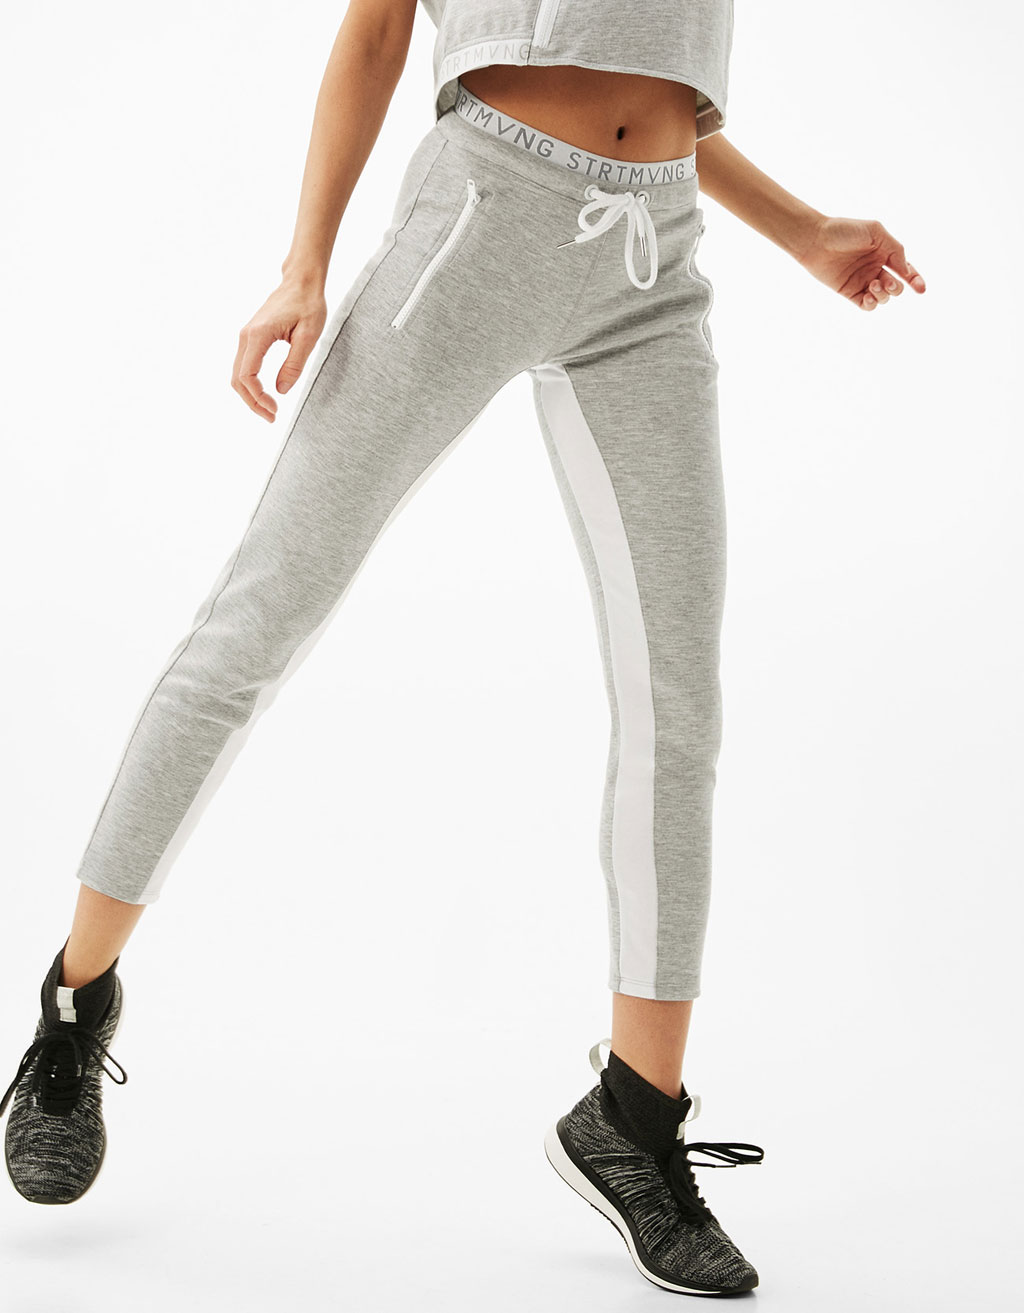 Plush sports trousers with stretch waist